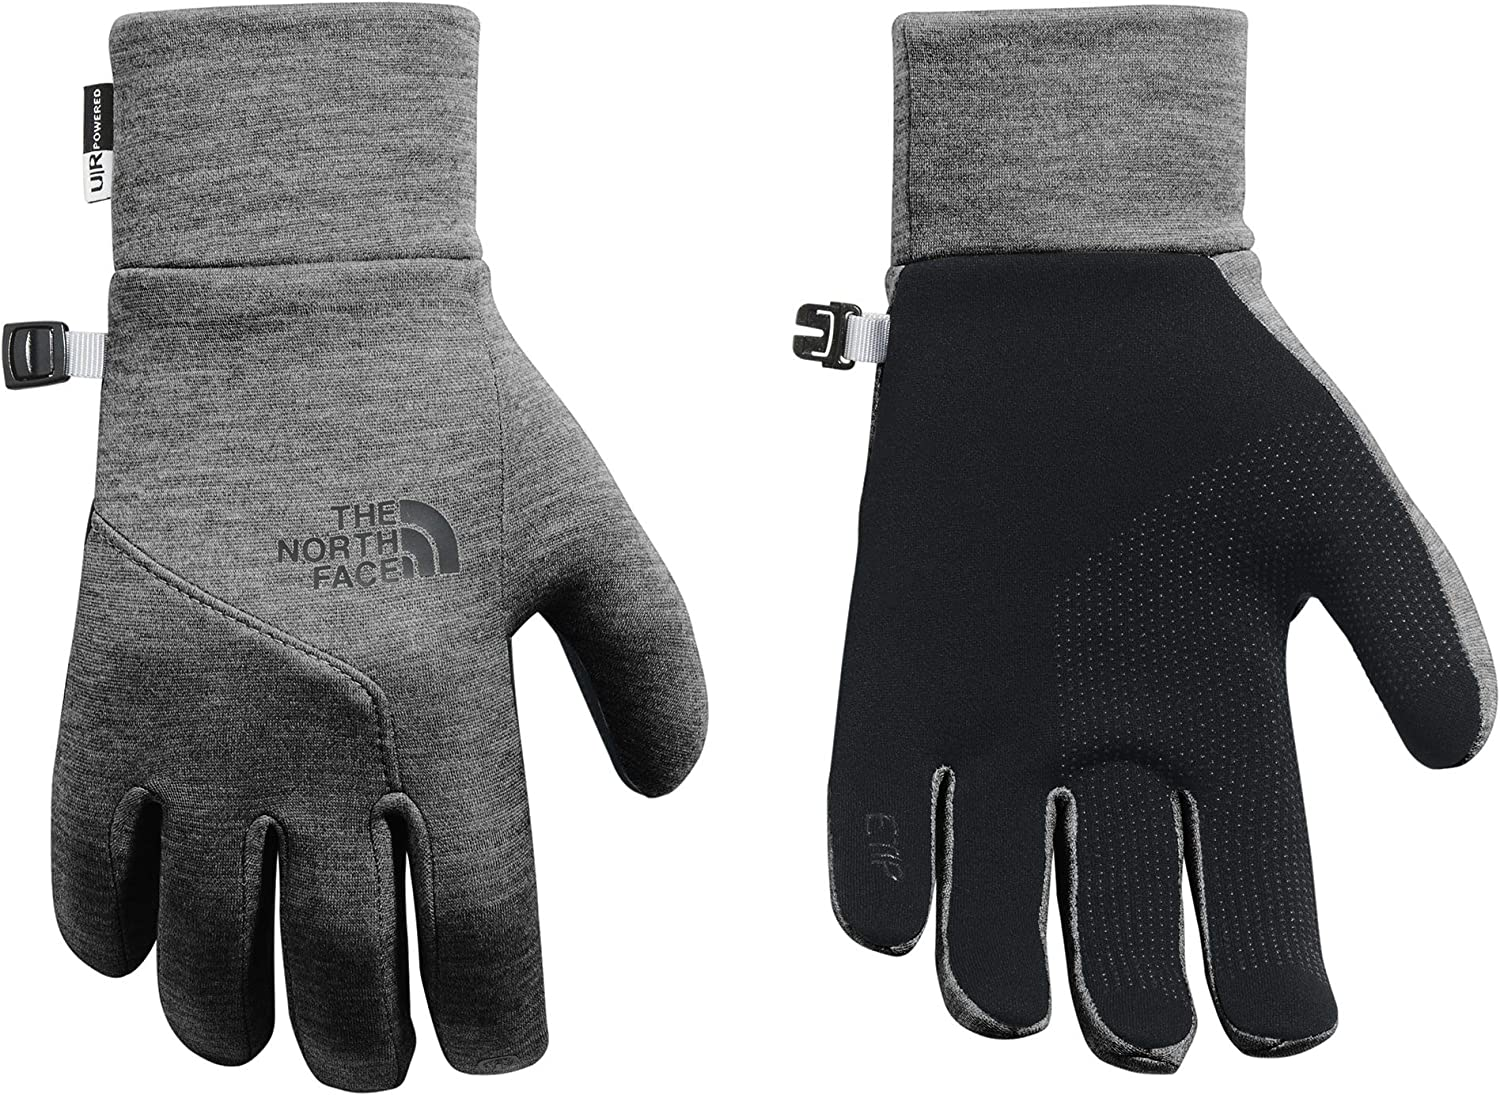 The North Face Women's Etip Glove : Home Improvement